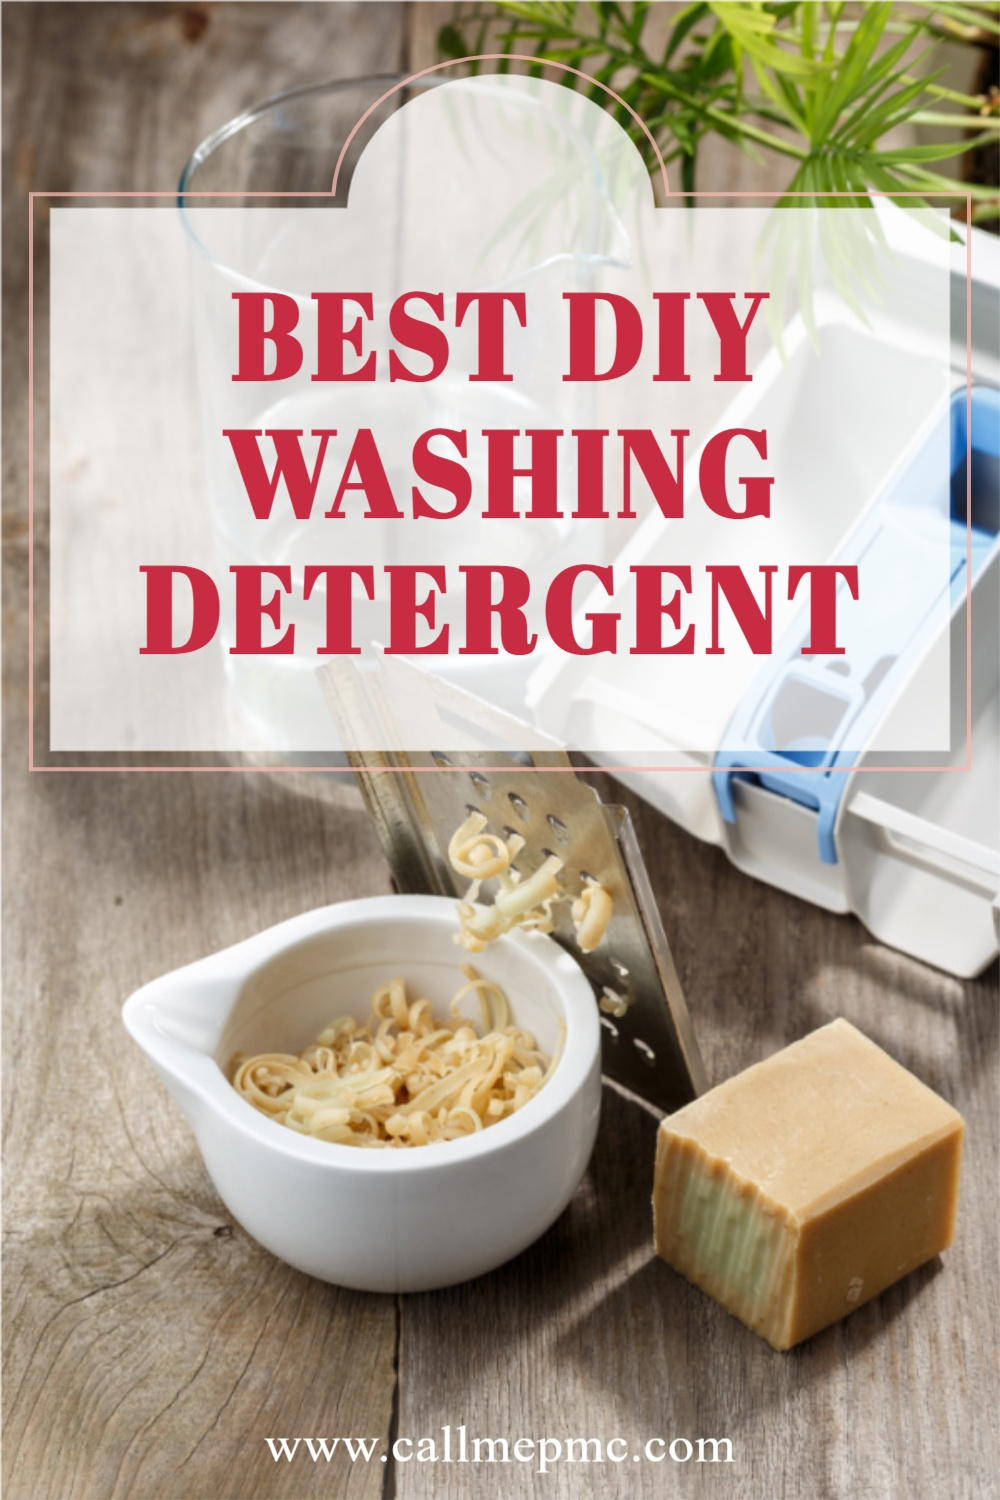 Best DIY Washing Detergent, much cheaper than store-bought! Learn how to make homemade laundry soap for just pennies!